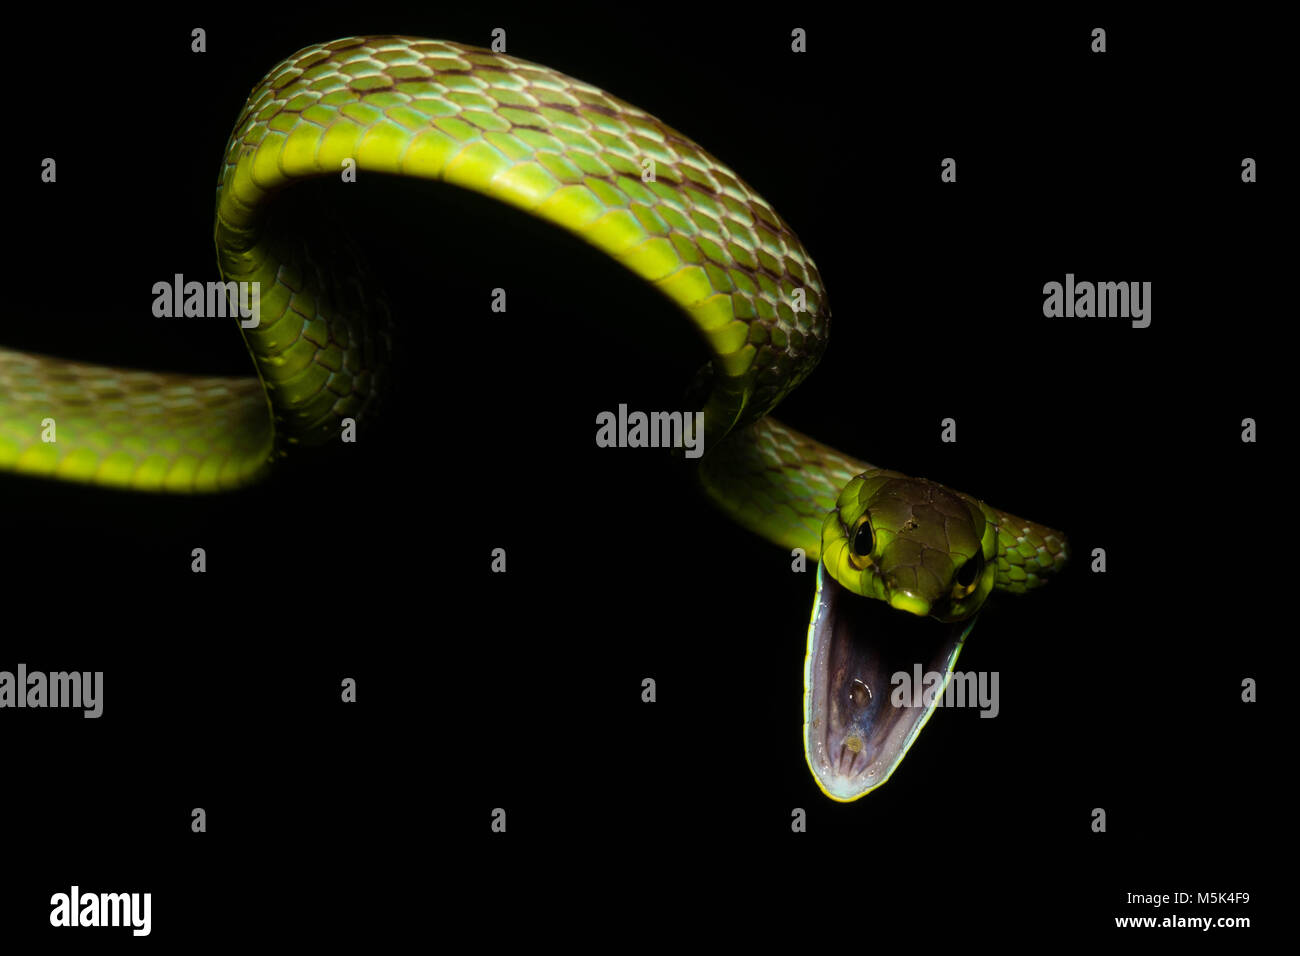 A cope's vine snake (Oxybelis brevirostris) attempts to look as scary as possible in order to scare off predators. Stock Photo